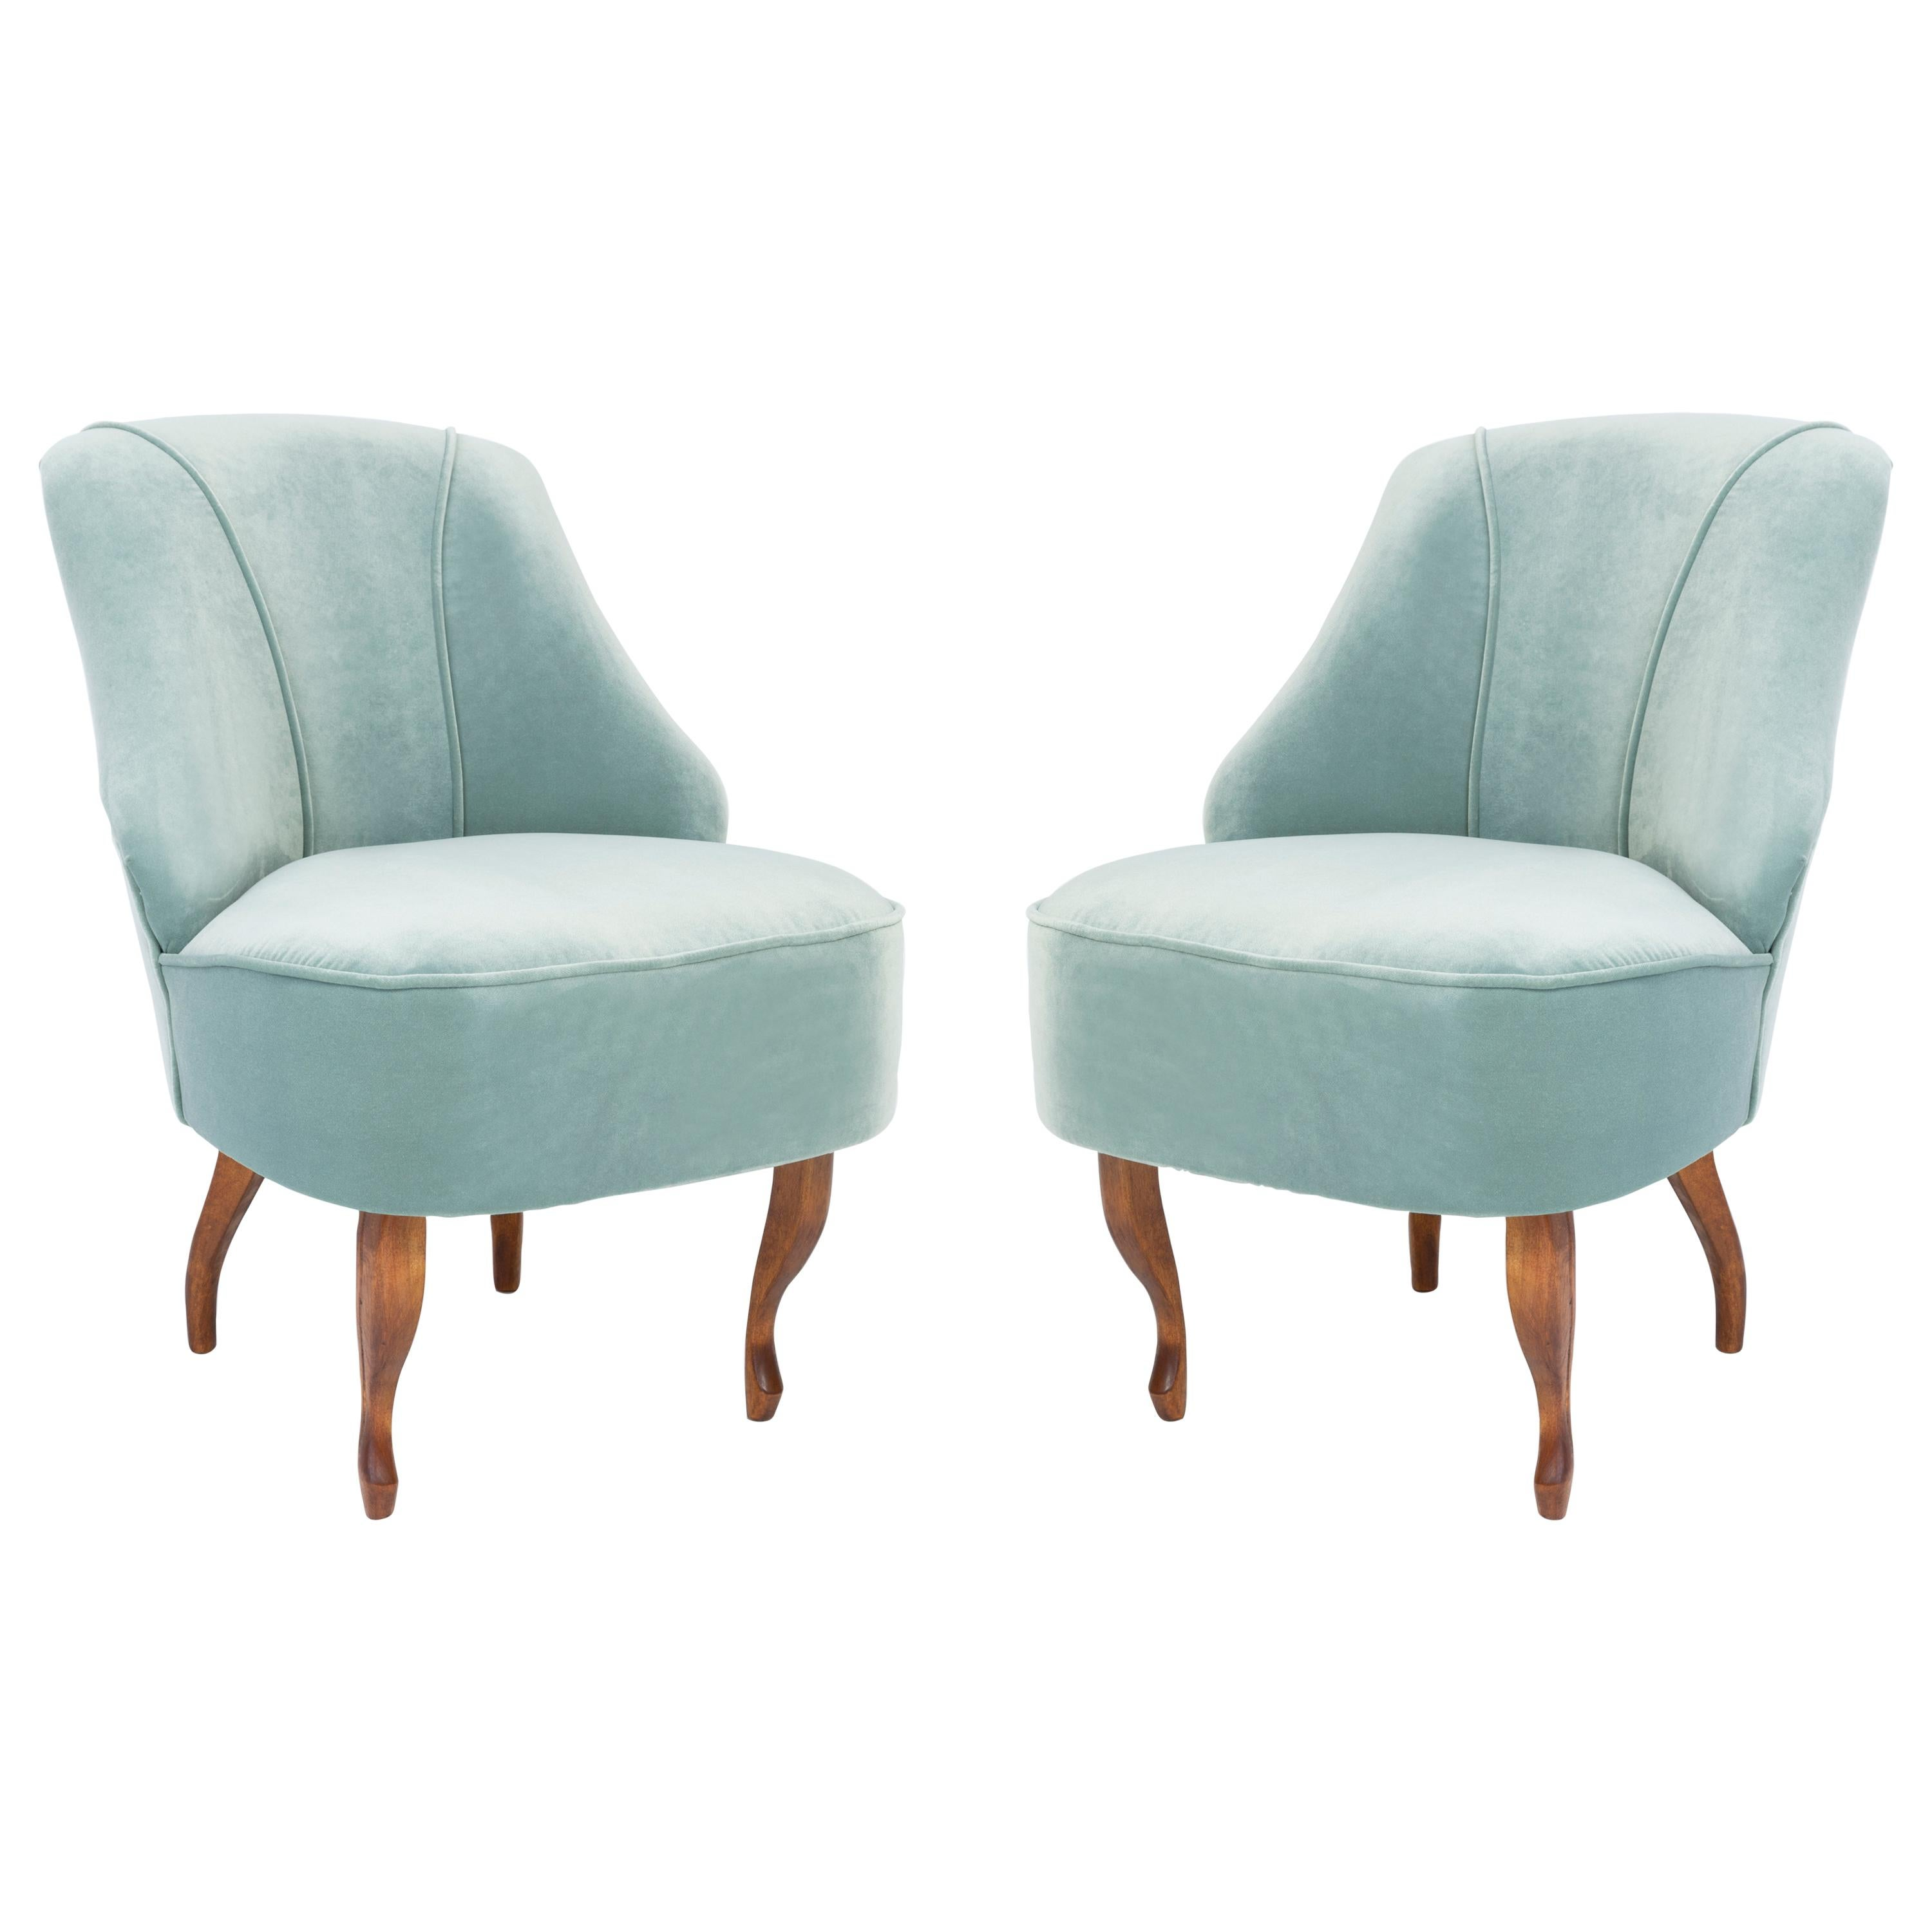 Set of Two 20th Century Art Deco Mint Armchairs, Germany, 1950s